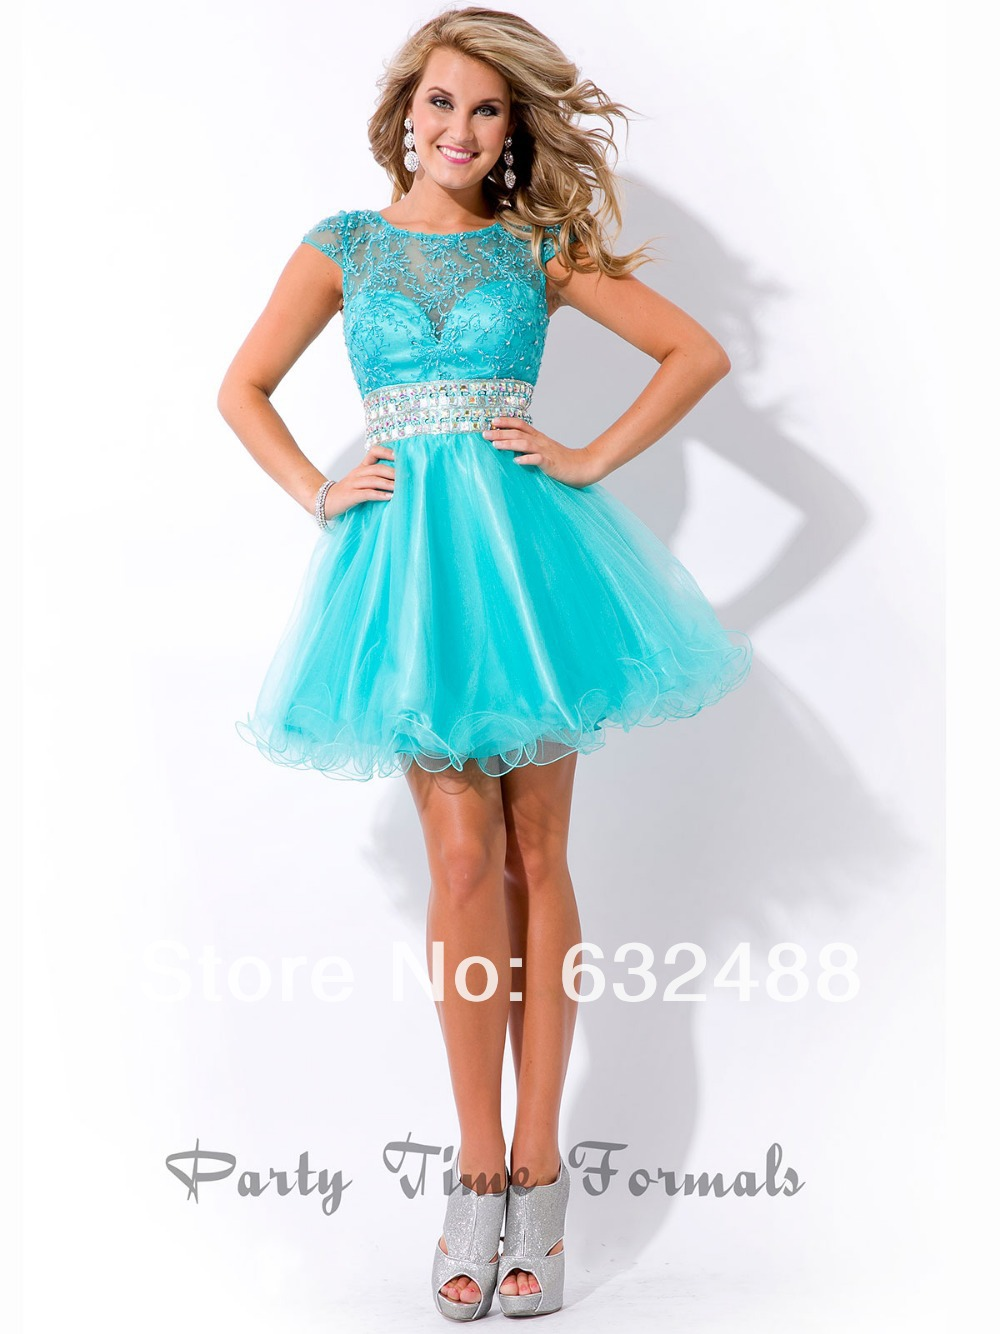 Magnificent Short Prom Dresses For Kids Component - Wedding Dress ...